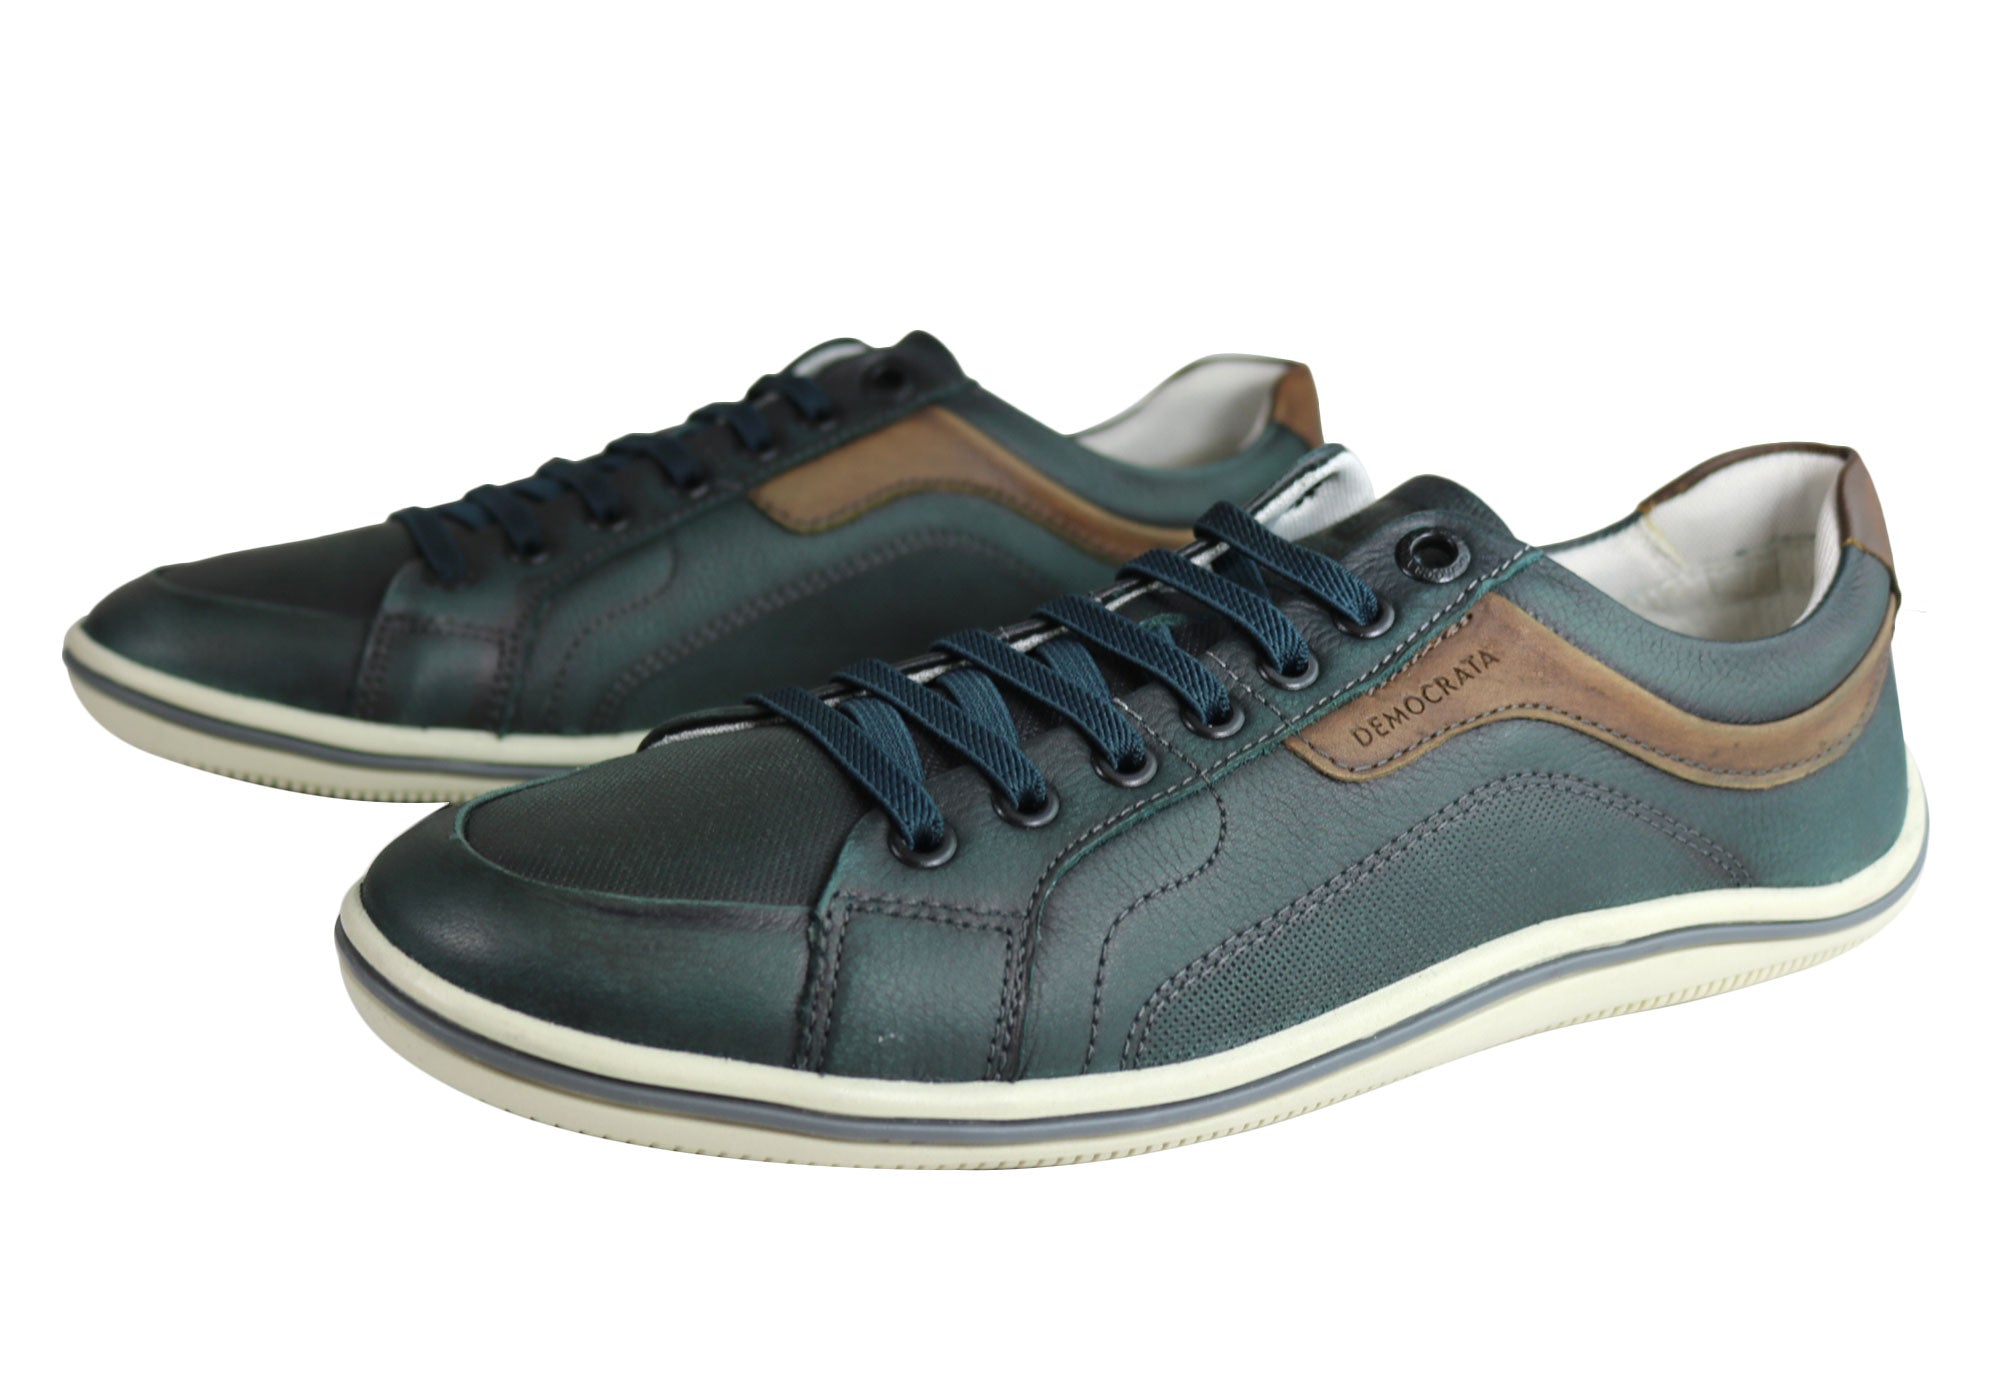 NEW-DEMOCRATA-MILES-MENS-LEATHER-SLIP-ON-CASUAL-SHOES-MADE-IN-BRAZIL thumbnail 8